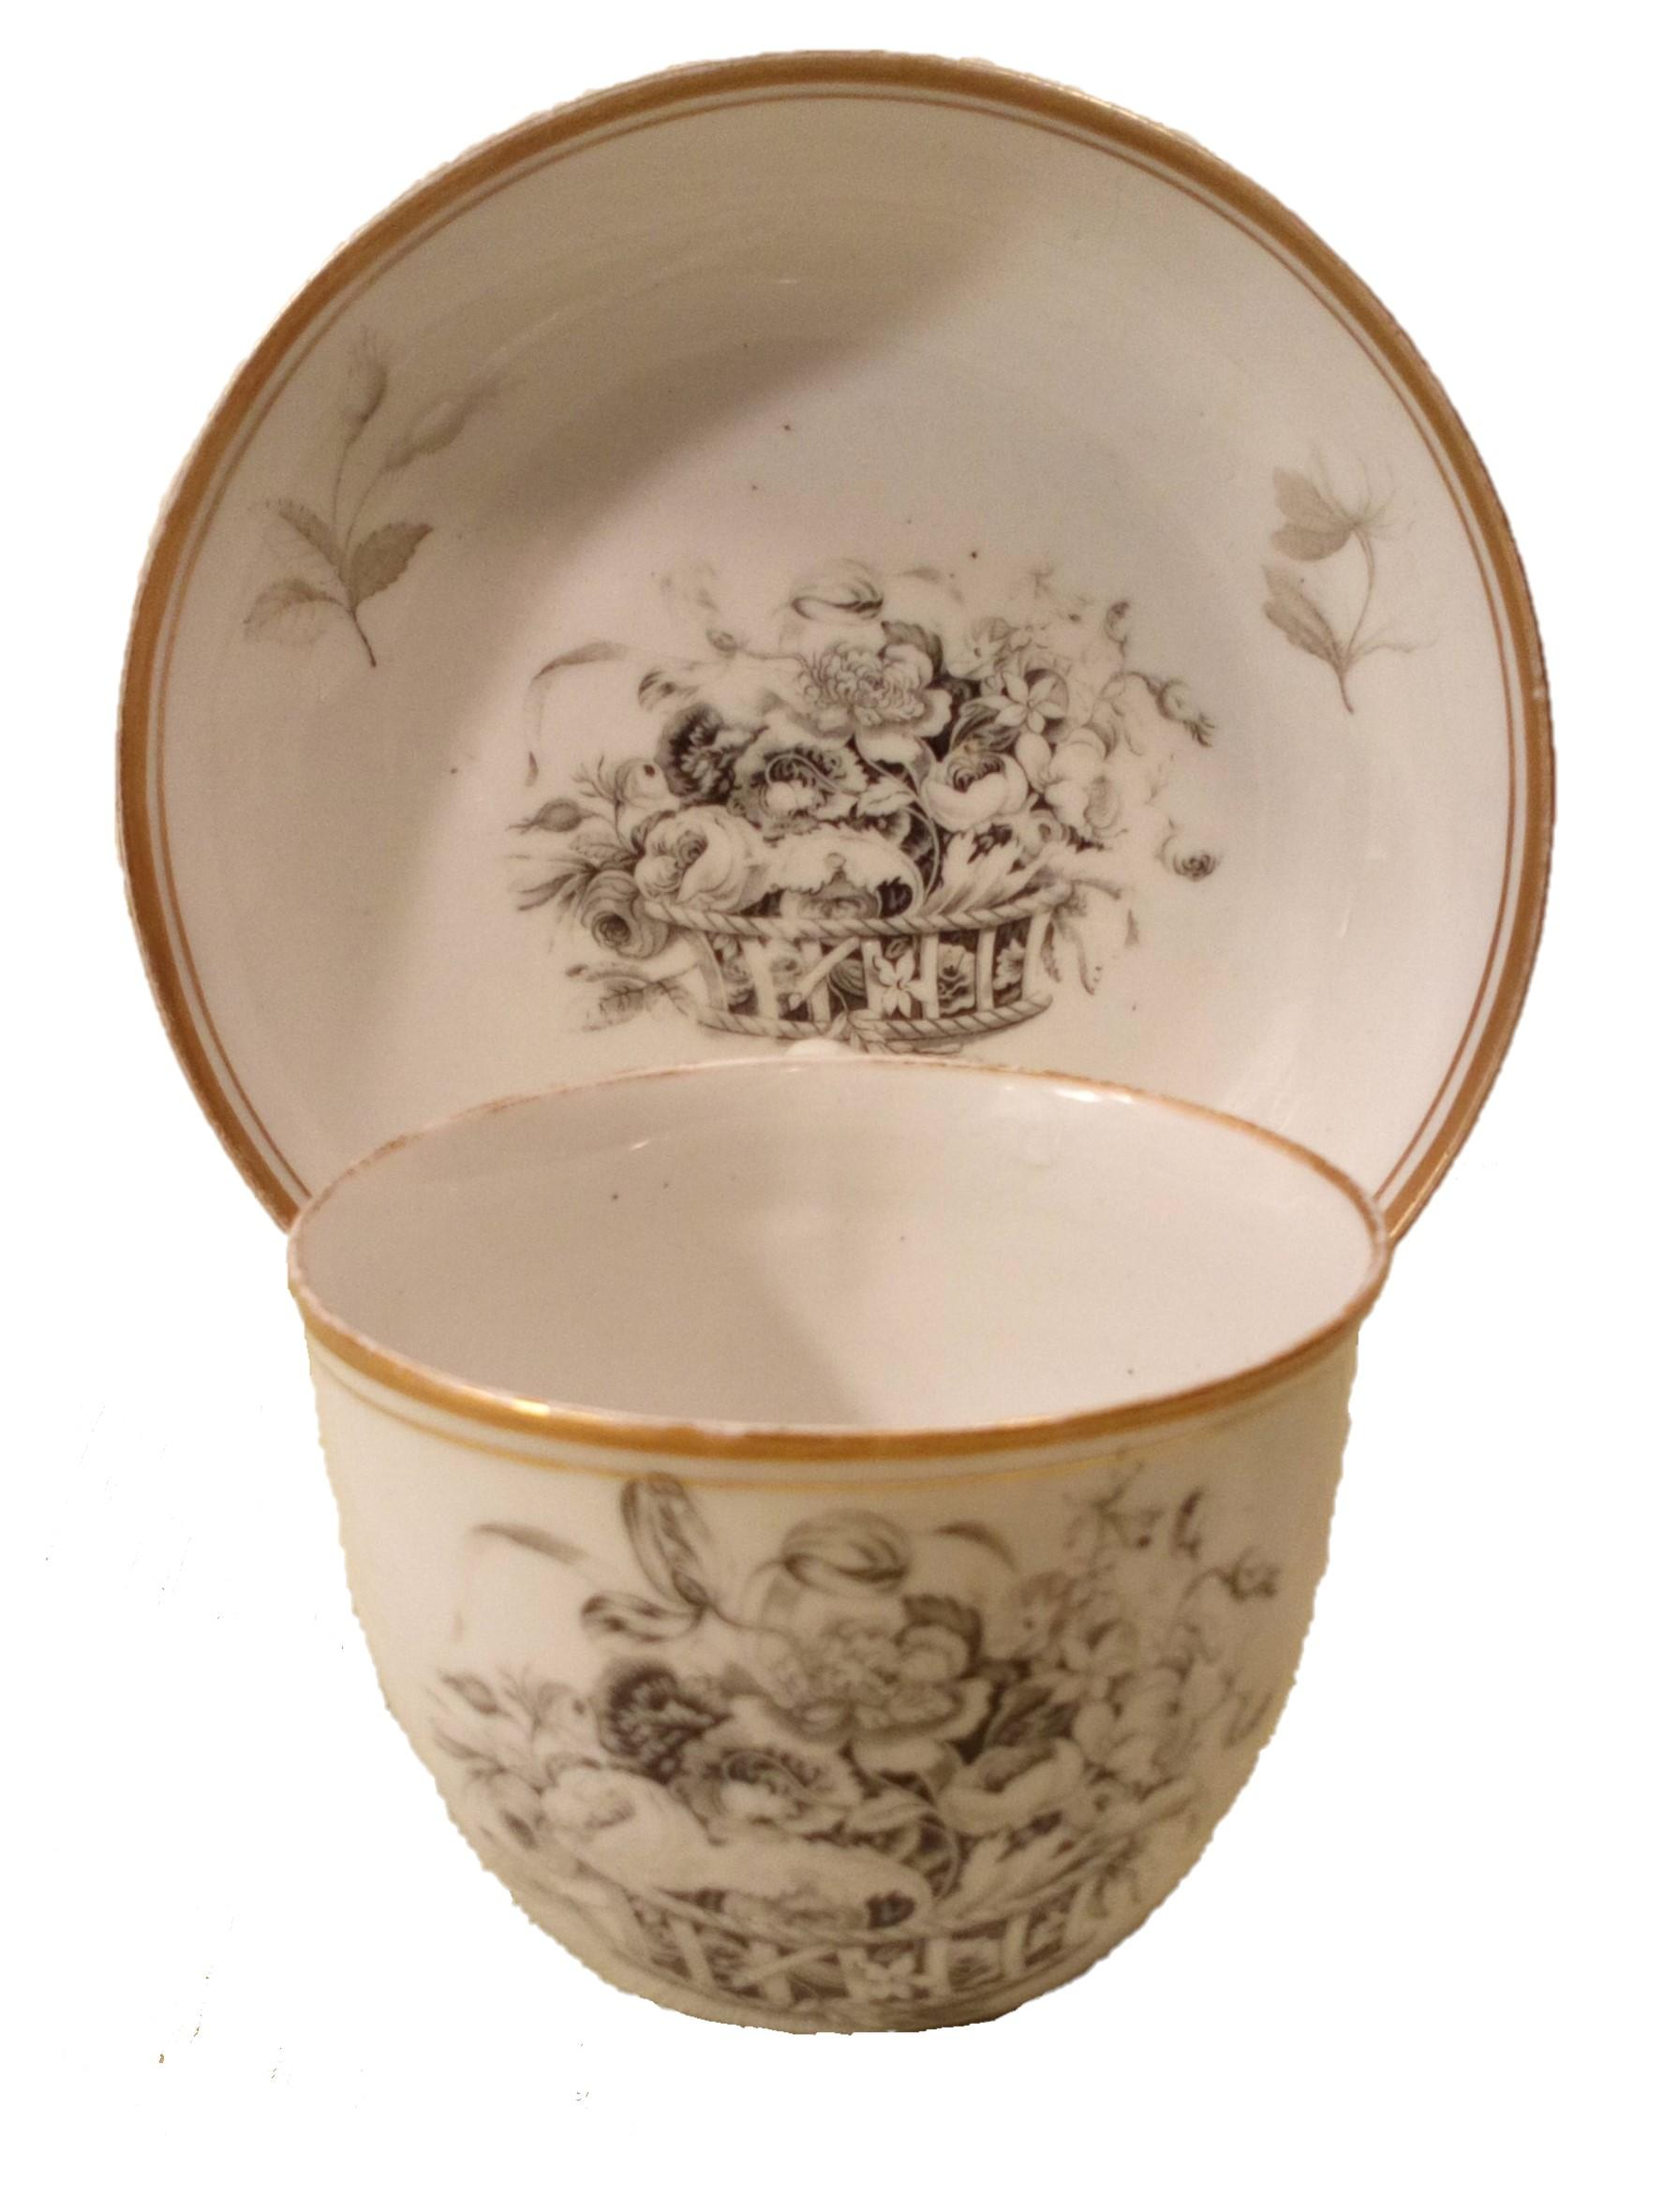 New Hall Hard Paste Porcelain Bute Shaped Cup and Saucer Bat Printed Floral Basket Pattern circa 1810